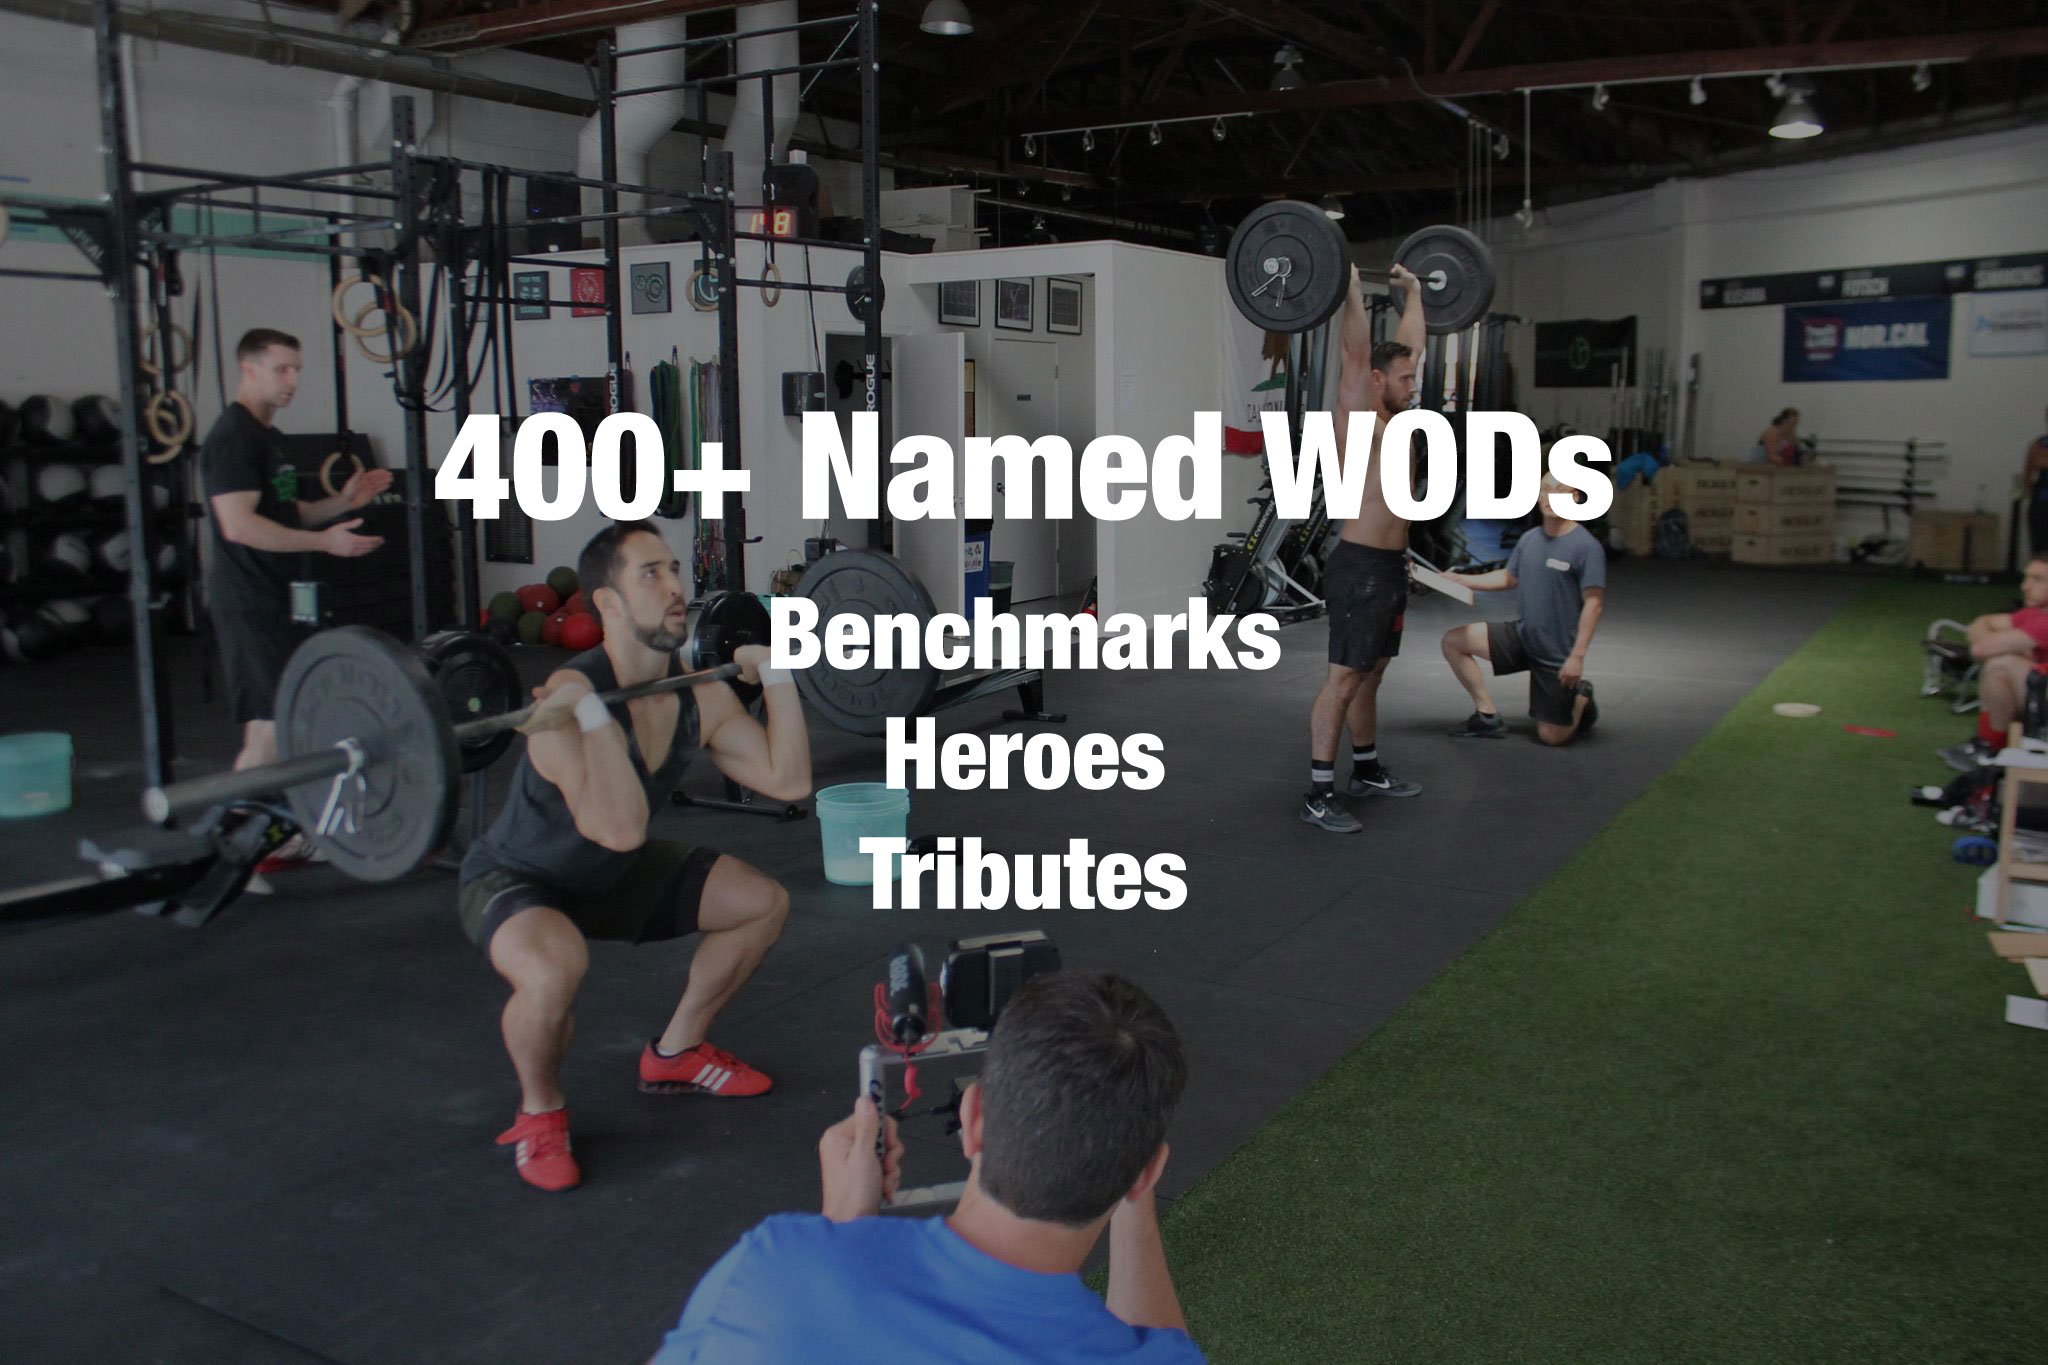 Crossfit Wods Search Amp Sort The List Named Workouts